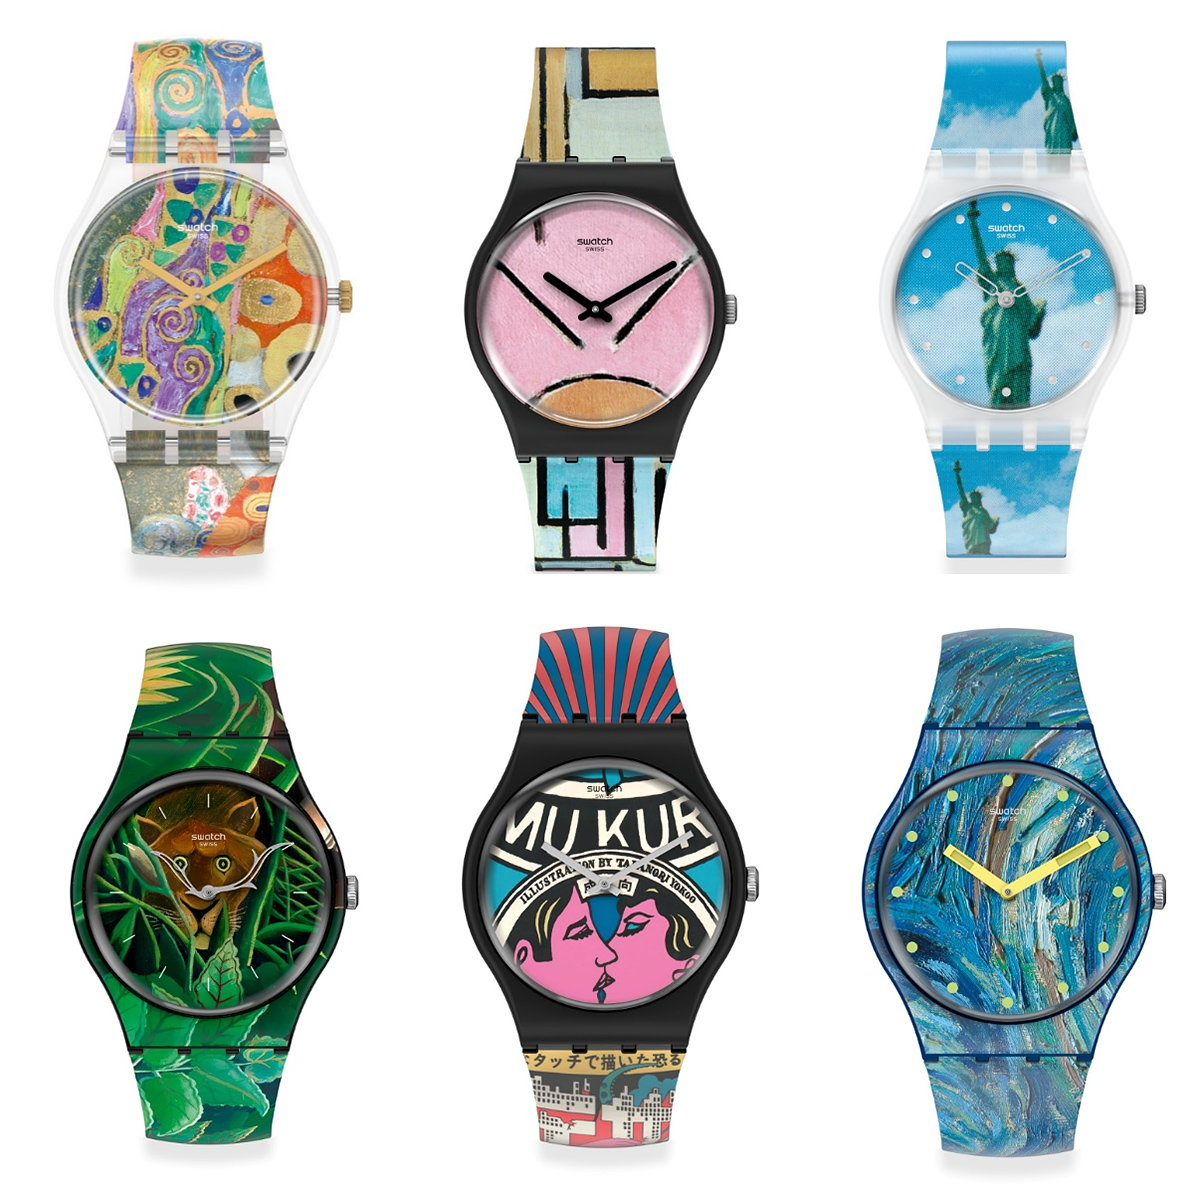 MoMA and Swatch to Launch Special-Edition Watches